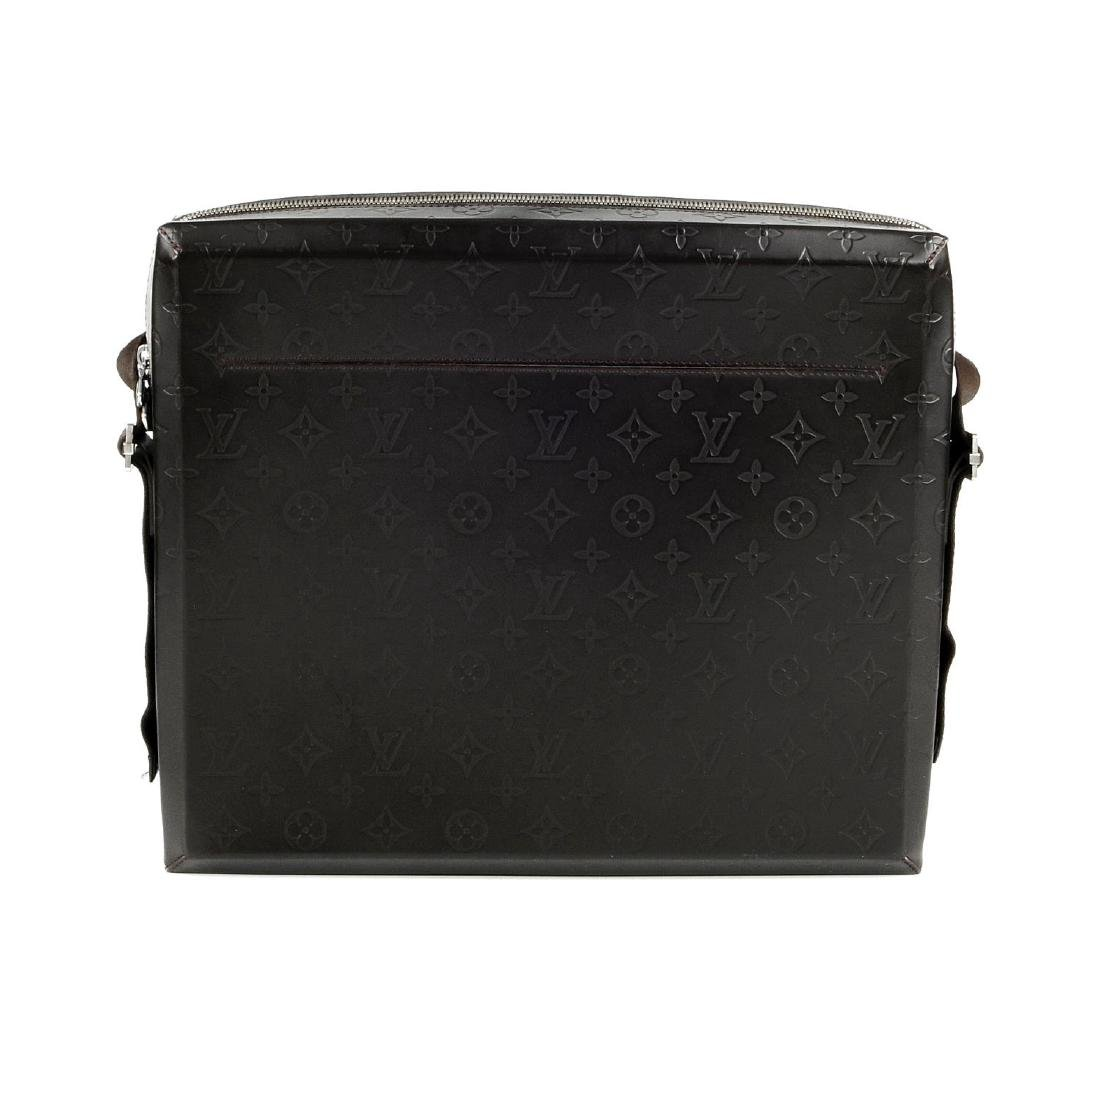 LOUIS VUITTON - a Monogram Steve Cafe messenger bag.